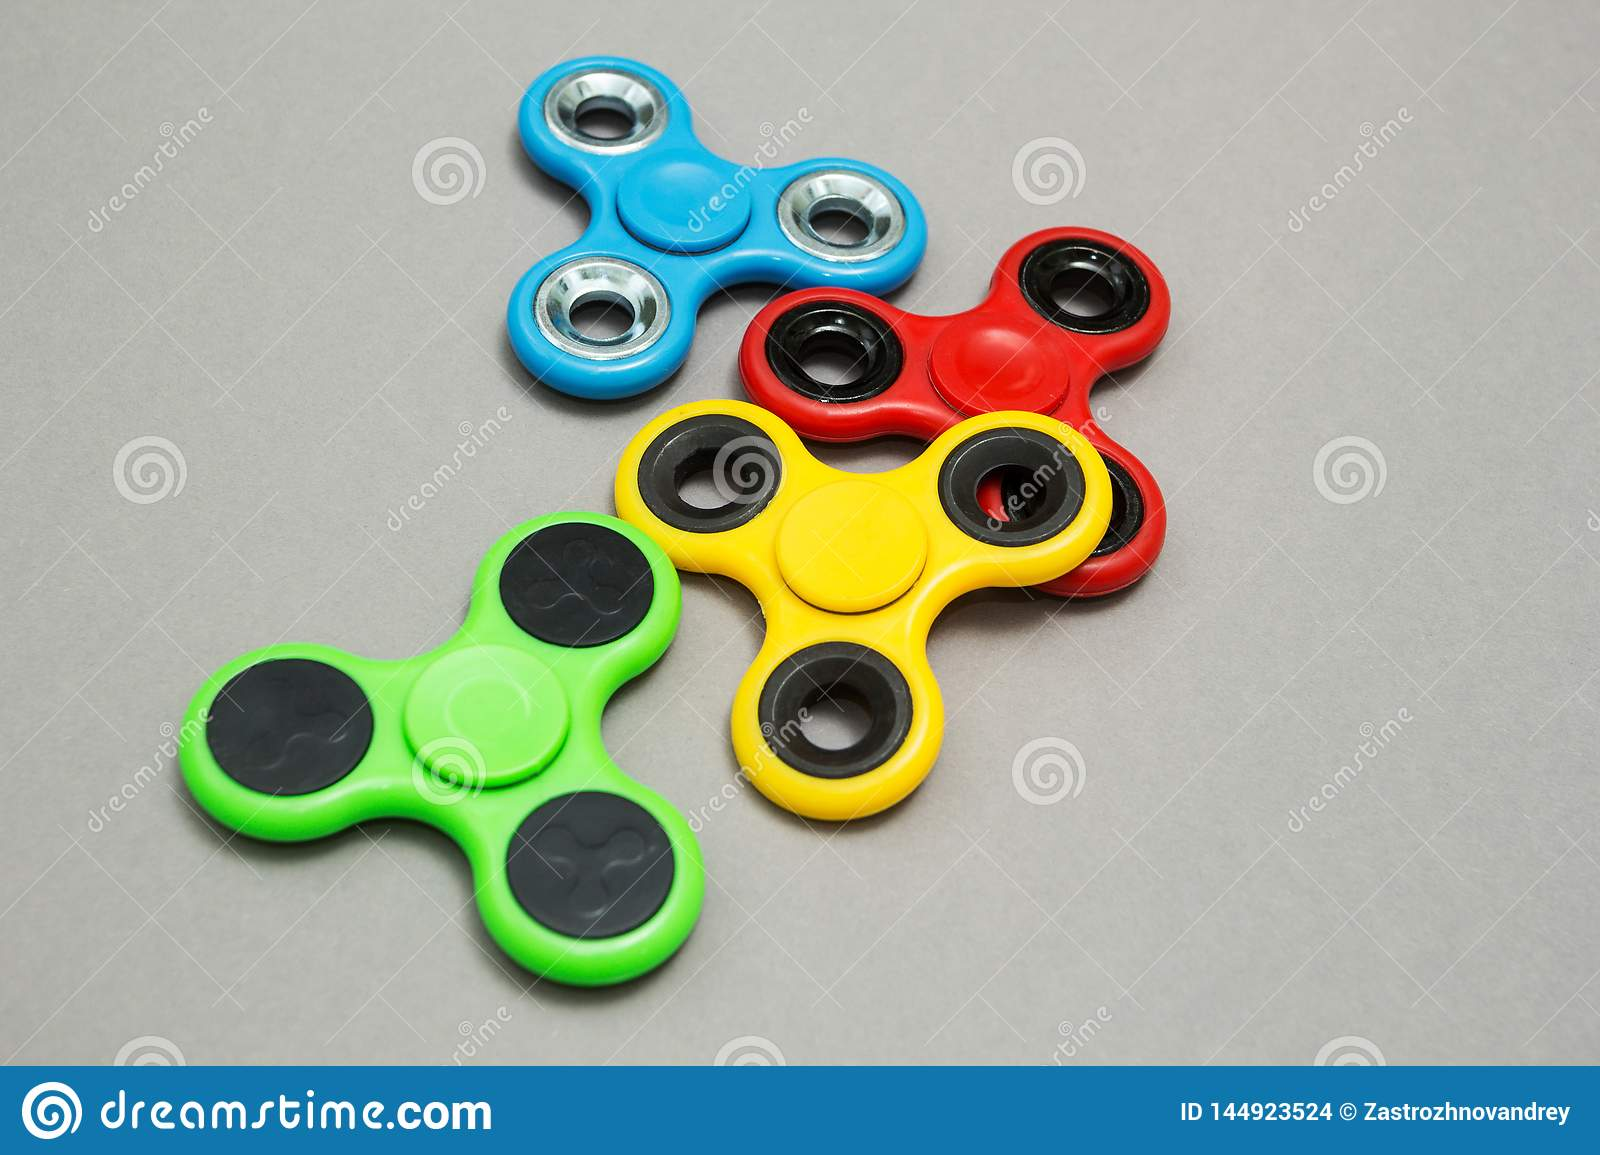 Multi Colored fidget finger spinner stress on grey background